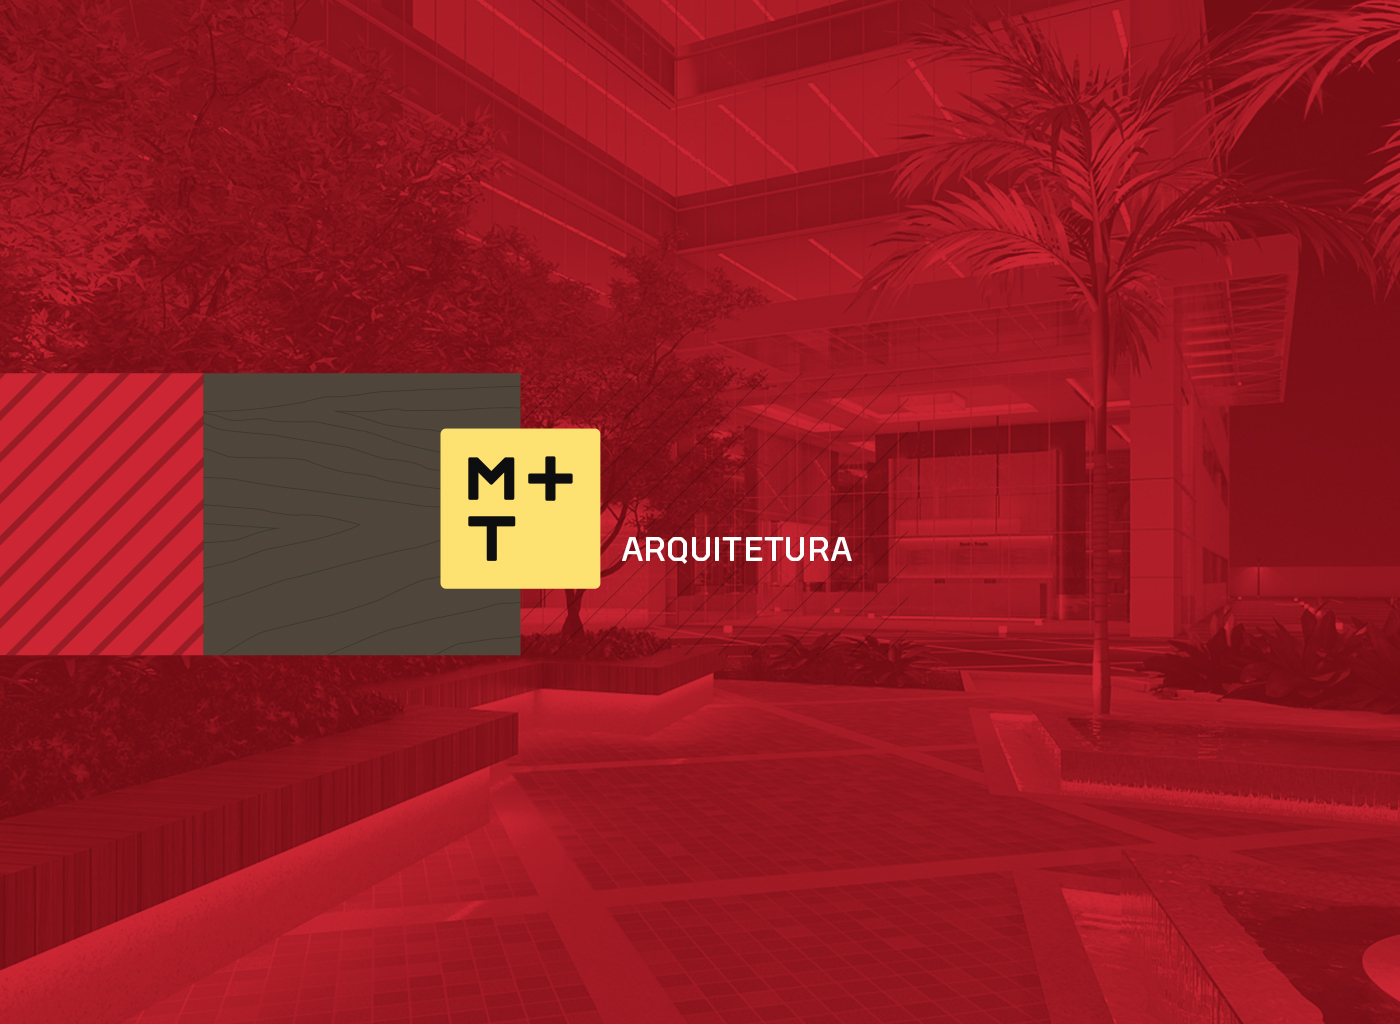 M+T Arquitetura Identity and Website